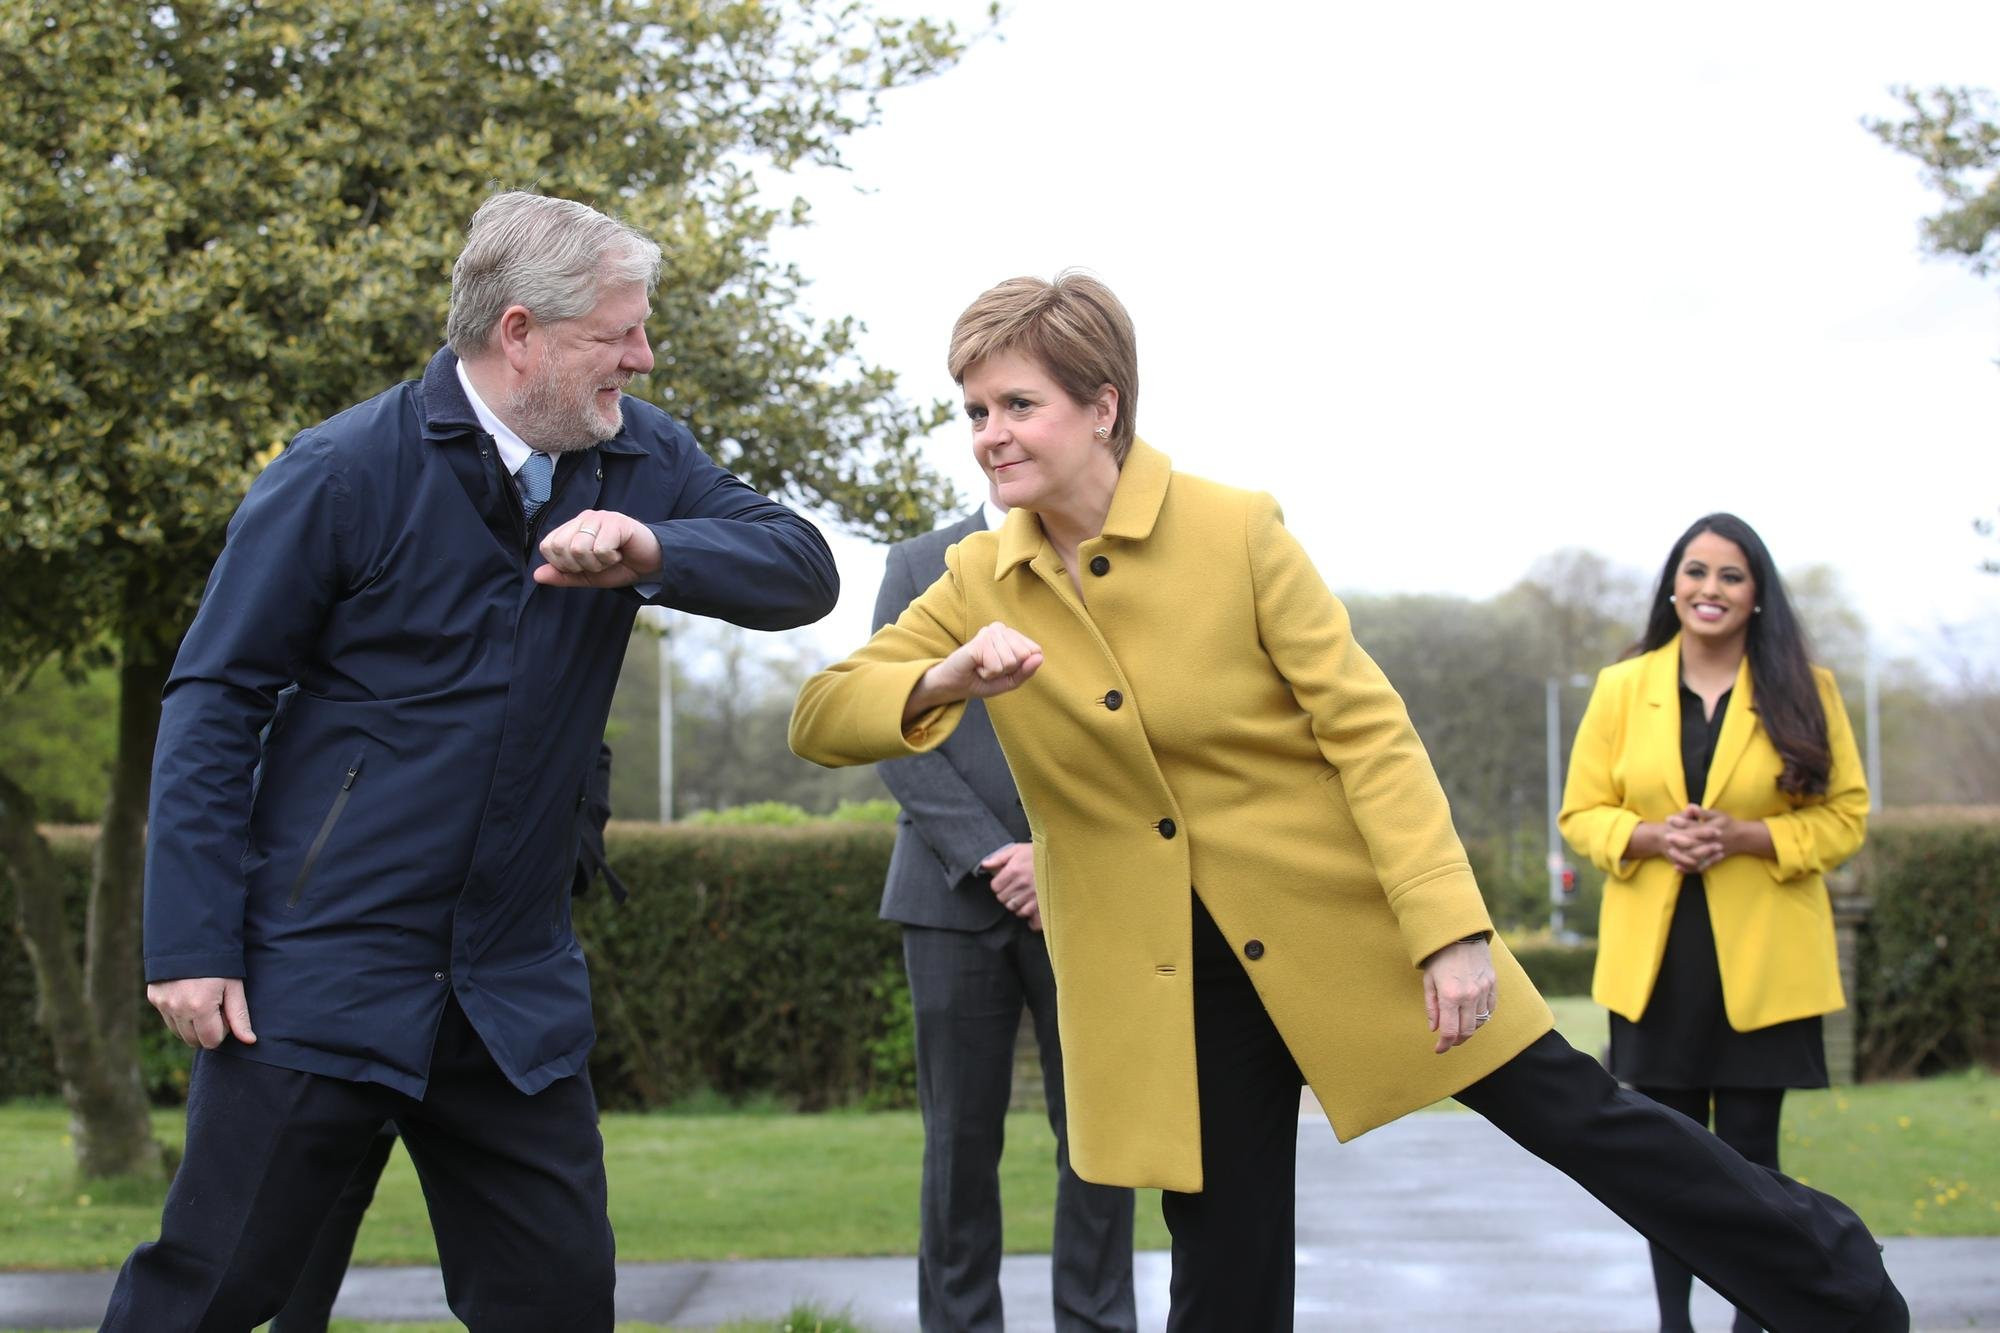 Scottish election 2021: Parties opposed to independence referendum need to respect voters' wishes – Angus Robertson